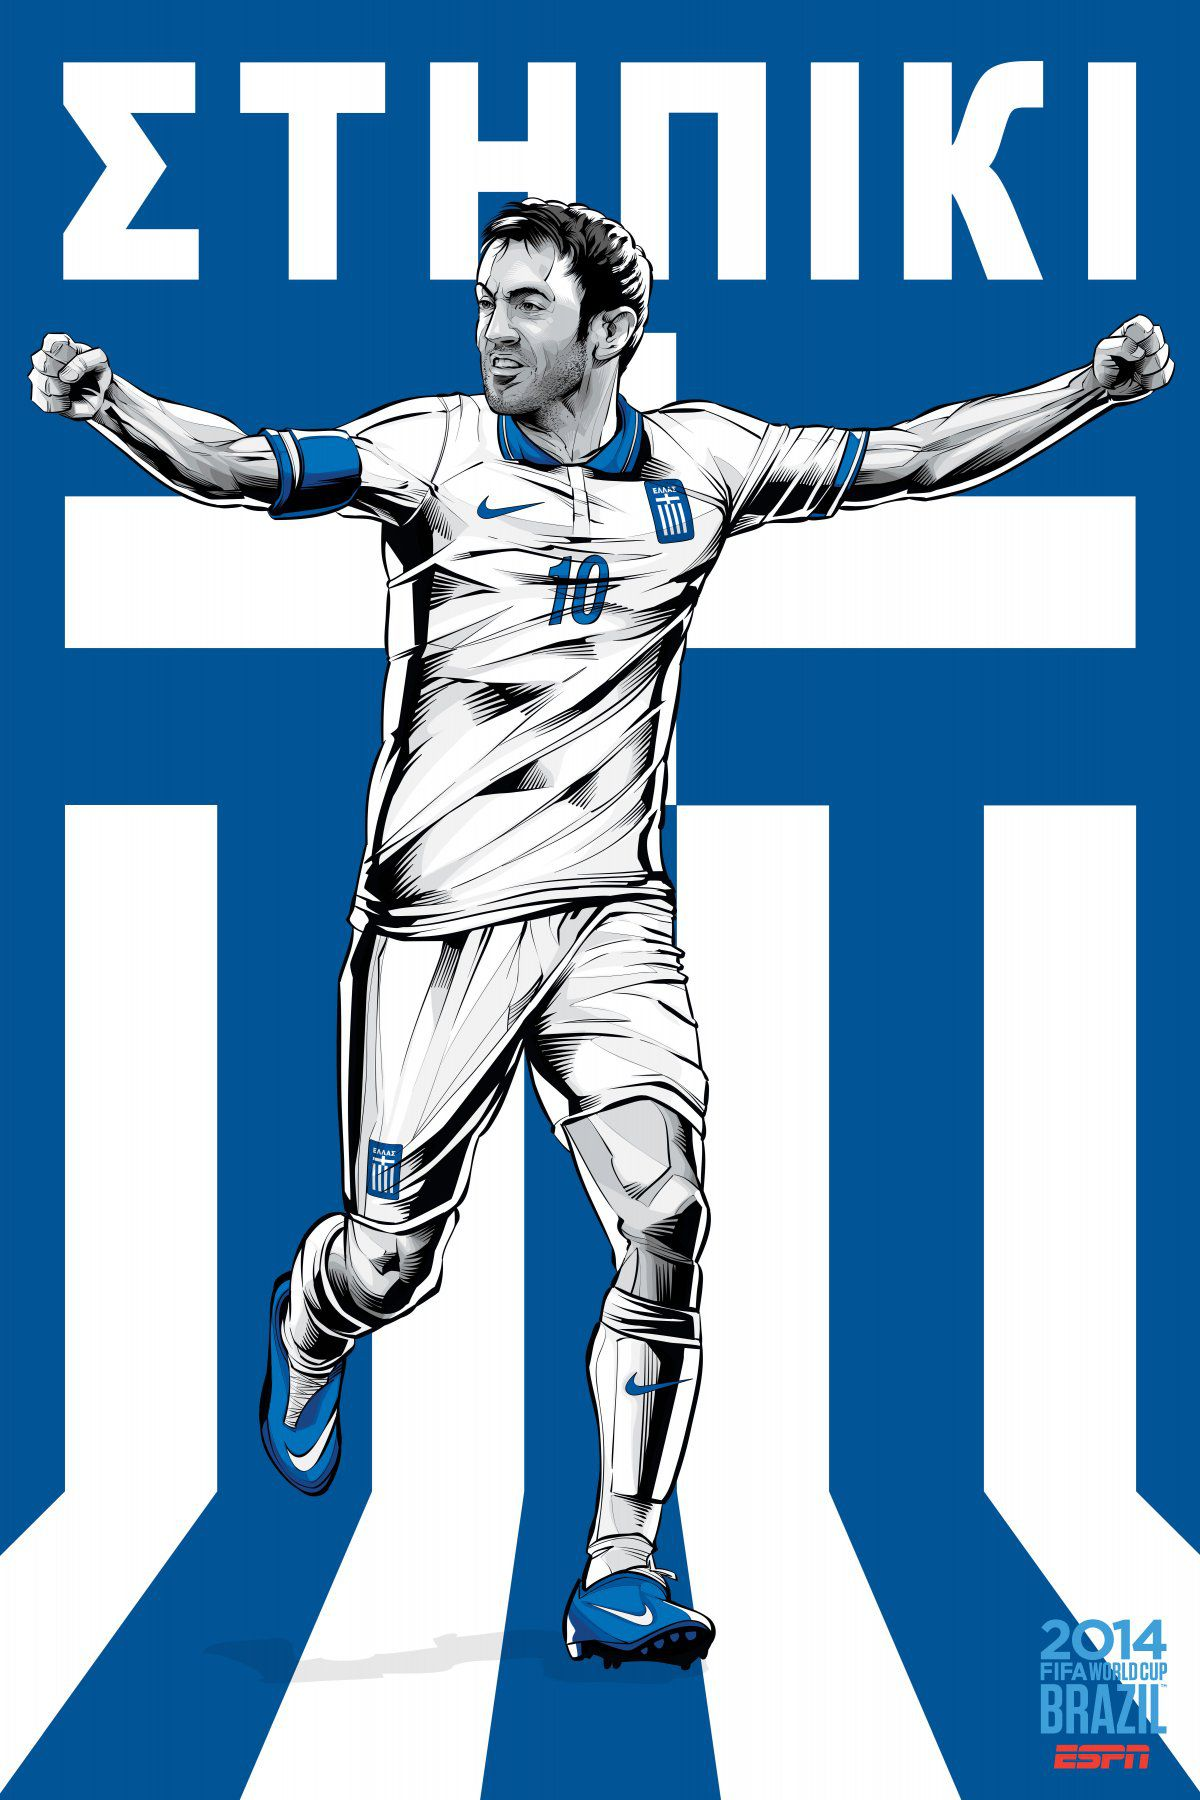 ESPN poster world cup brazil 2014 of Greece